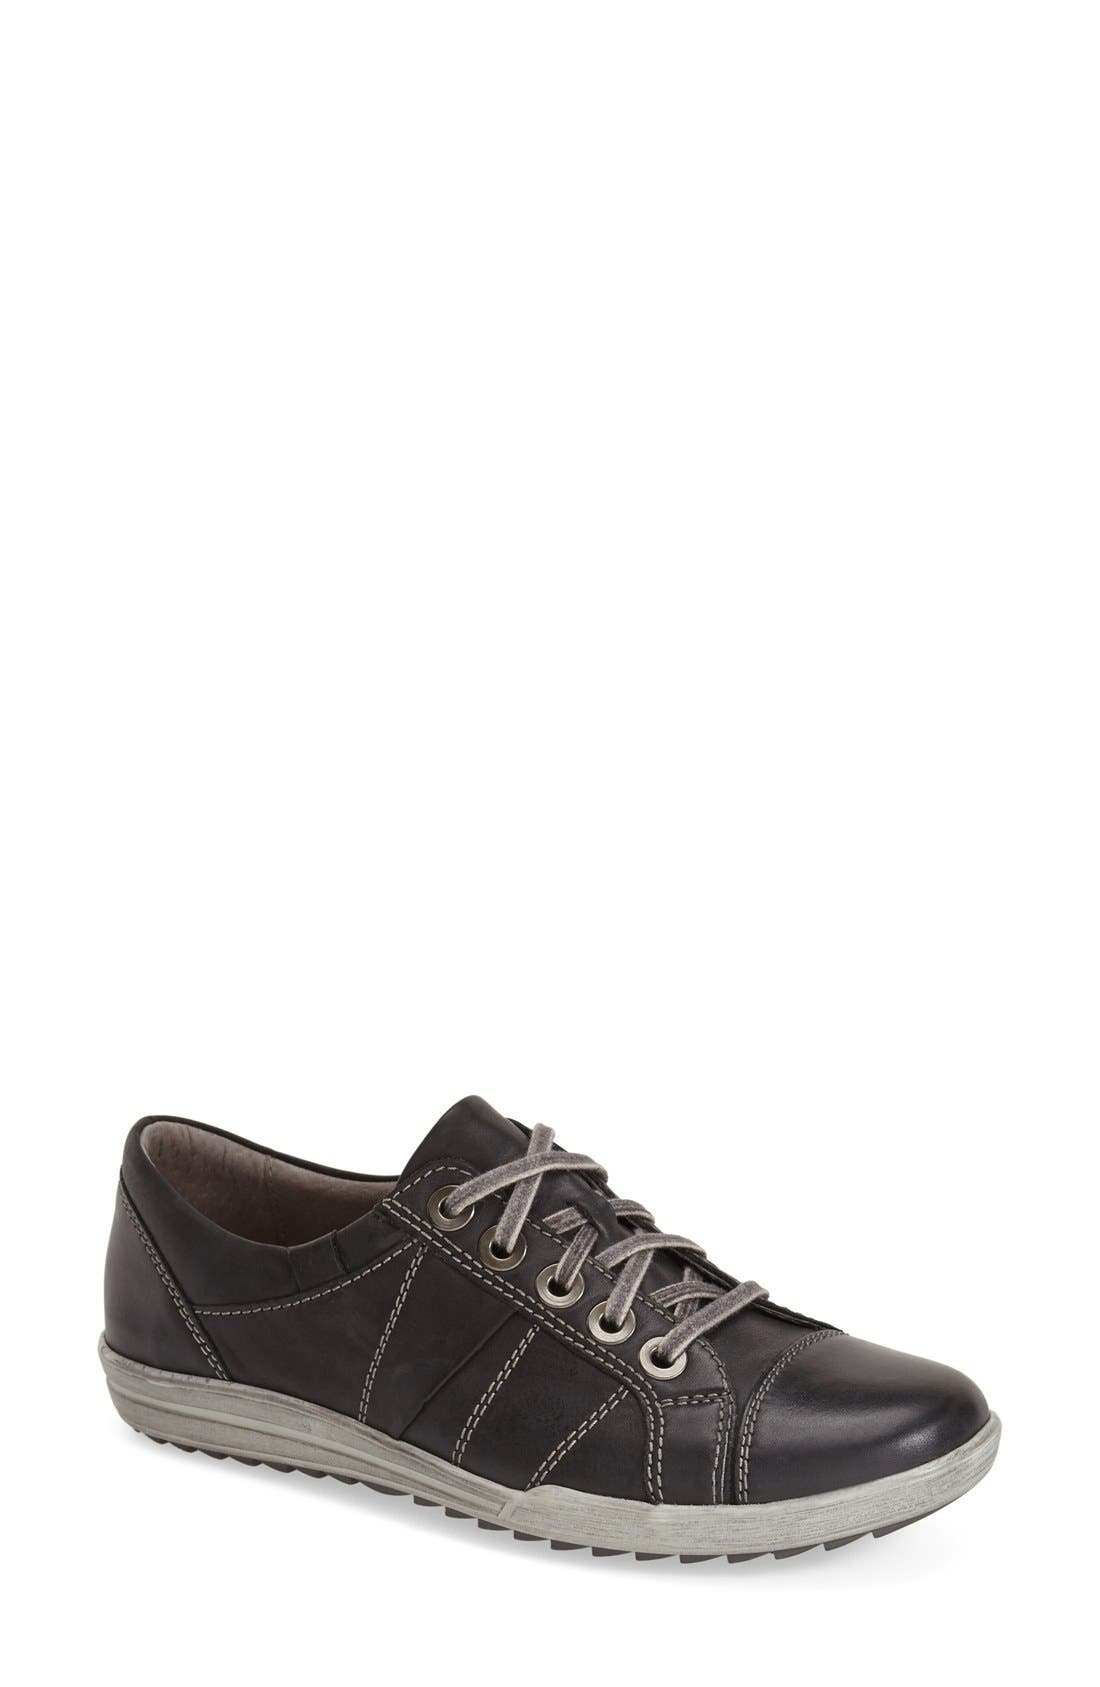 'Dany 05' Leather Sneaker,                         Main,                         color,